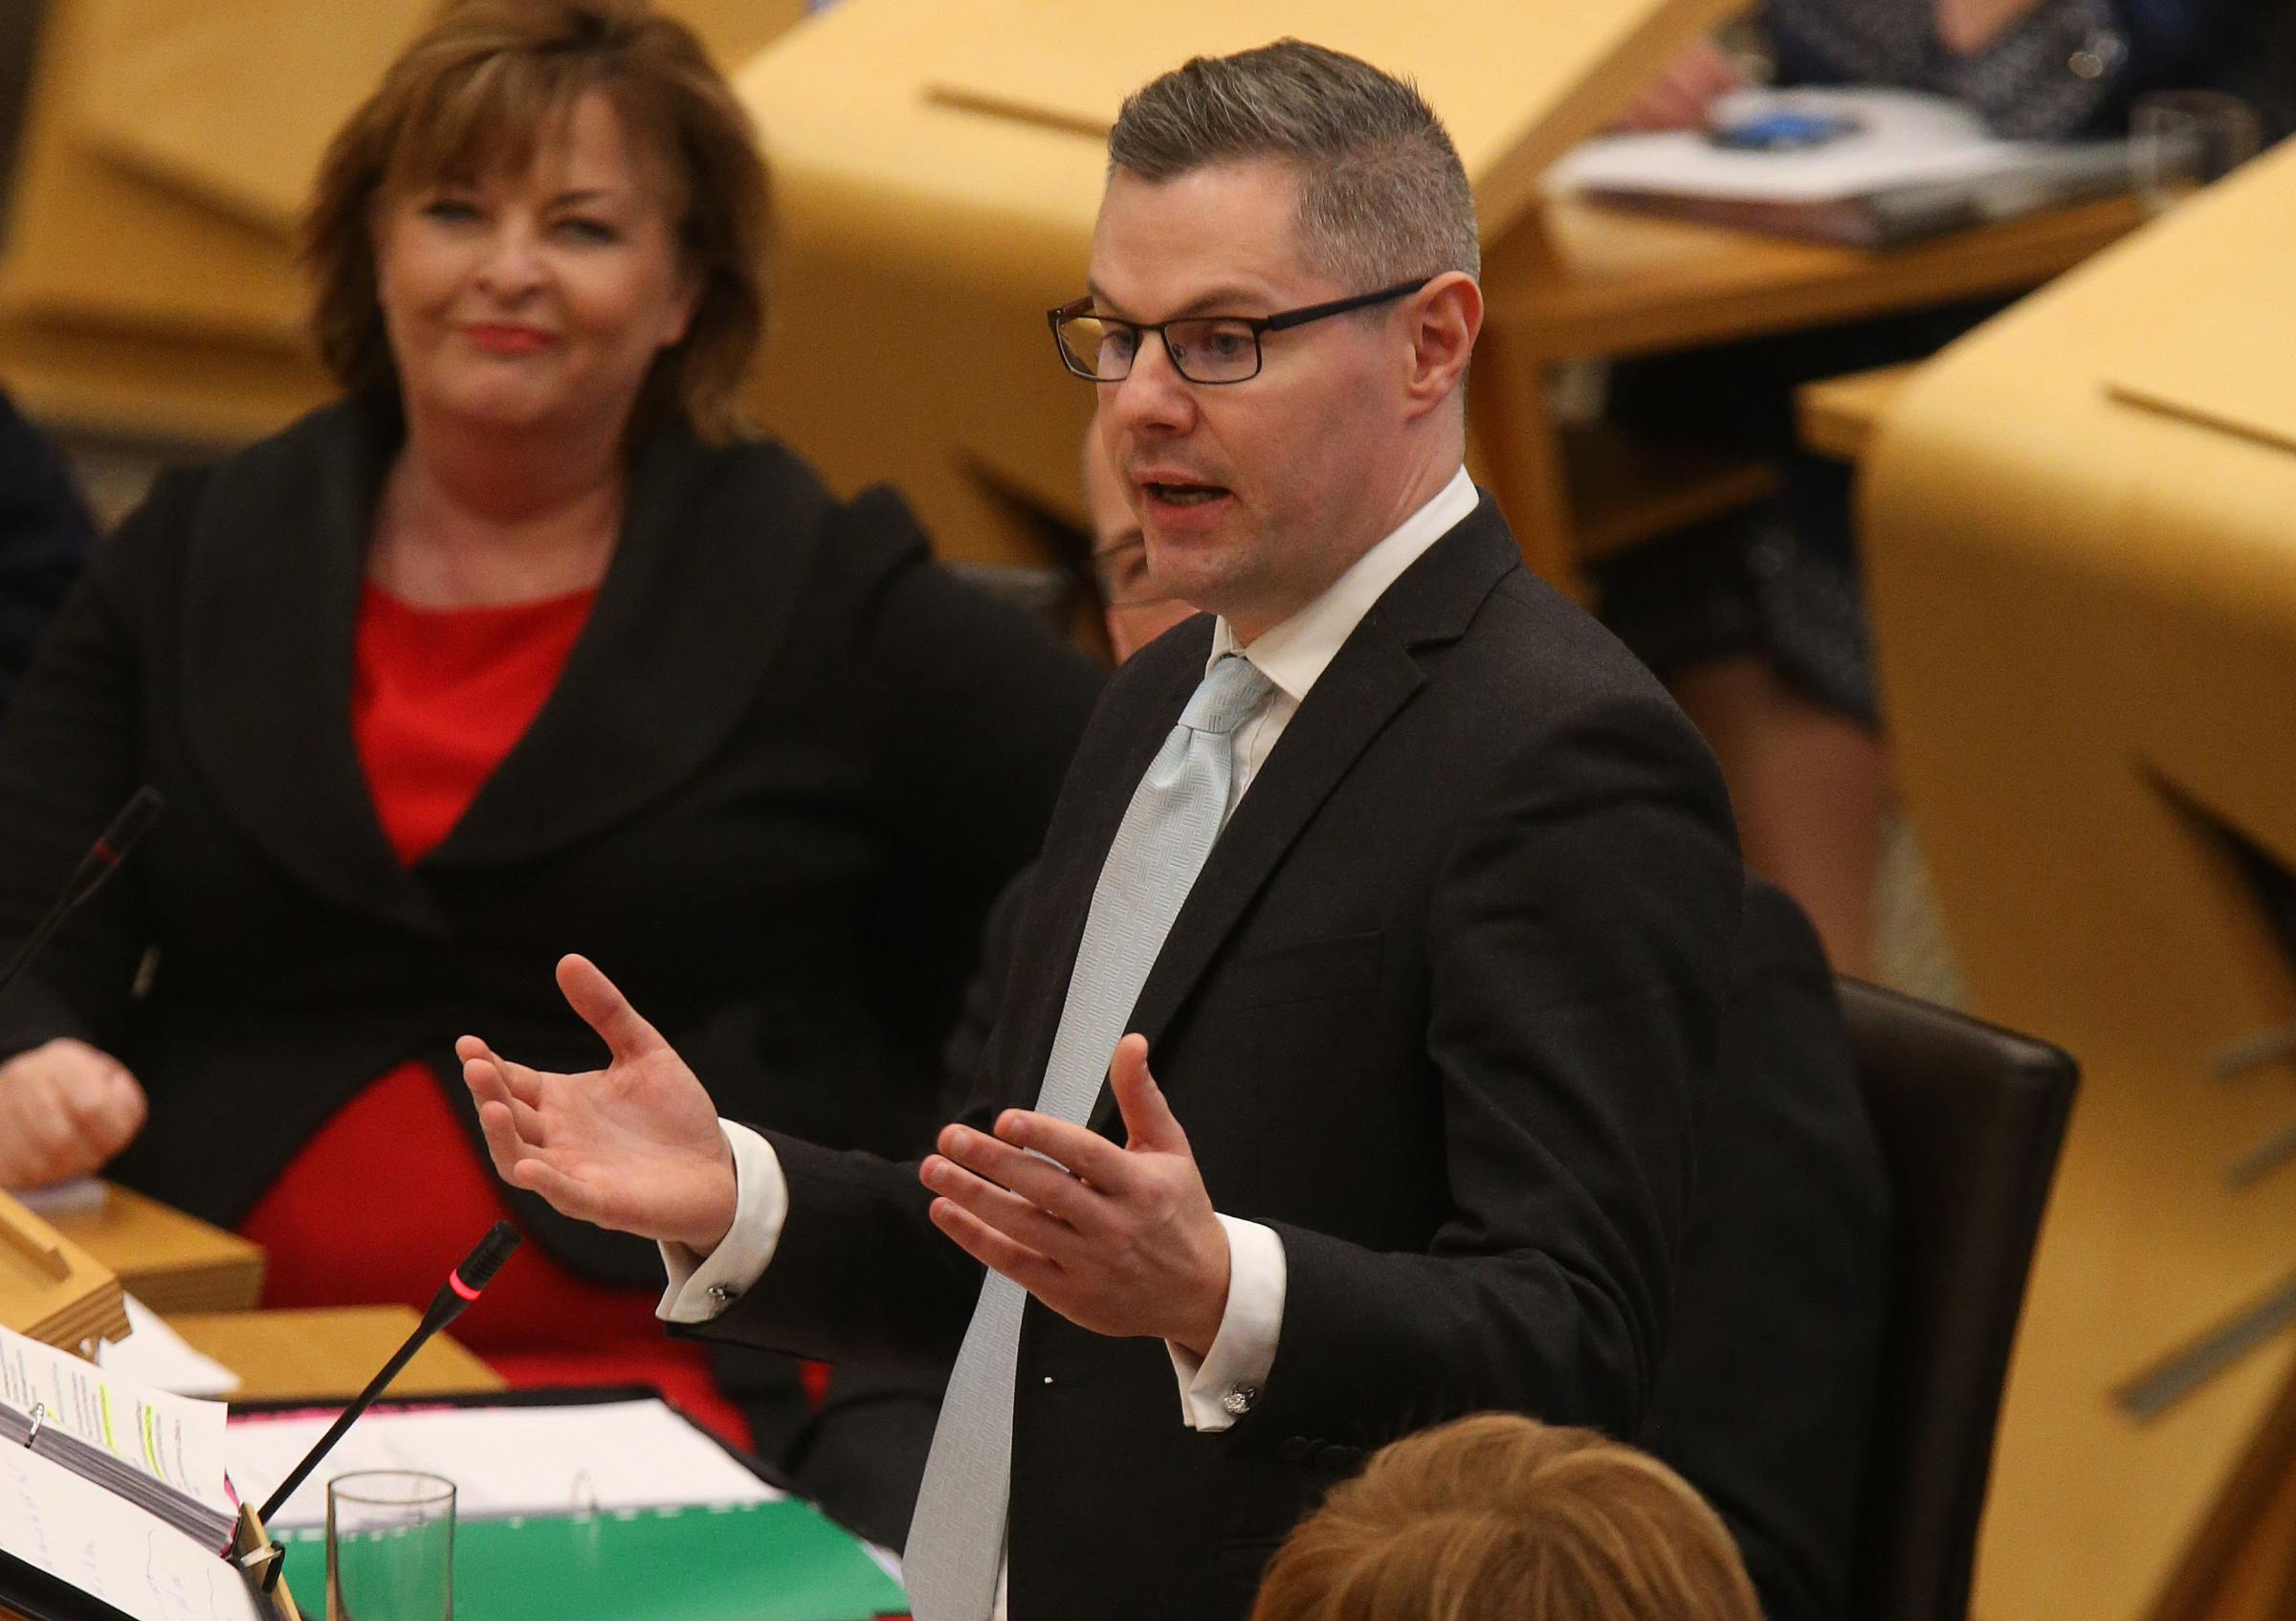 Derek Mackay said now was not the time to give tax breaks to higher earners.